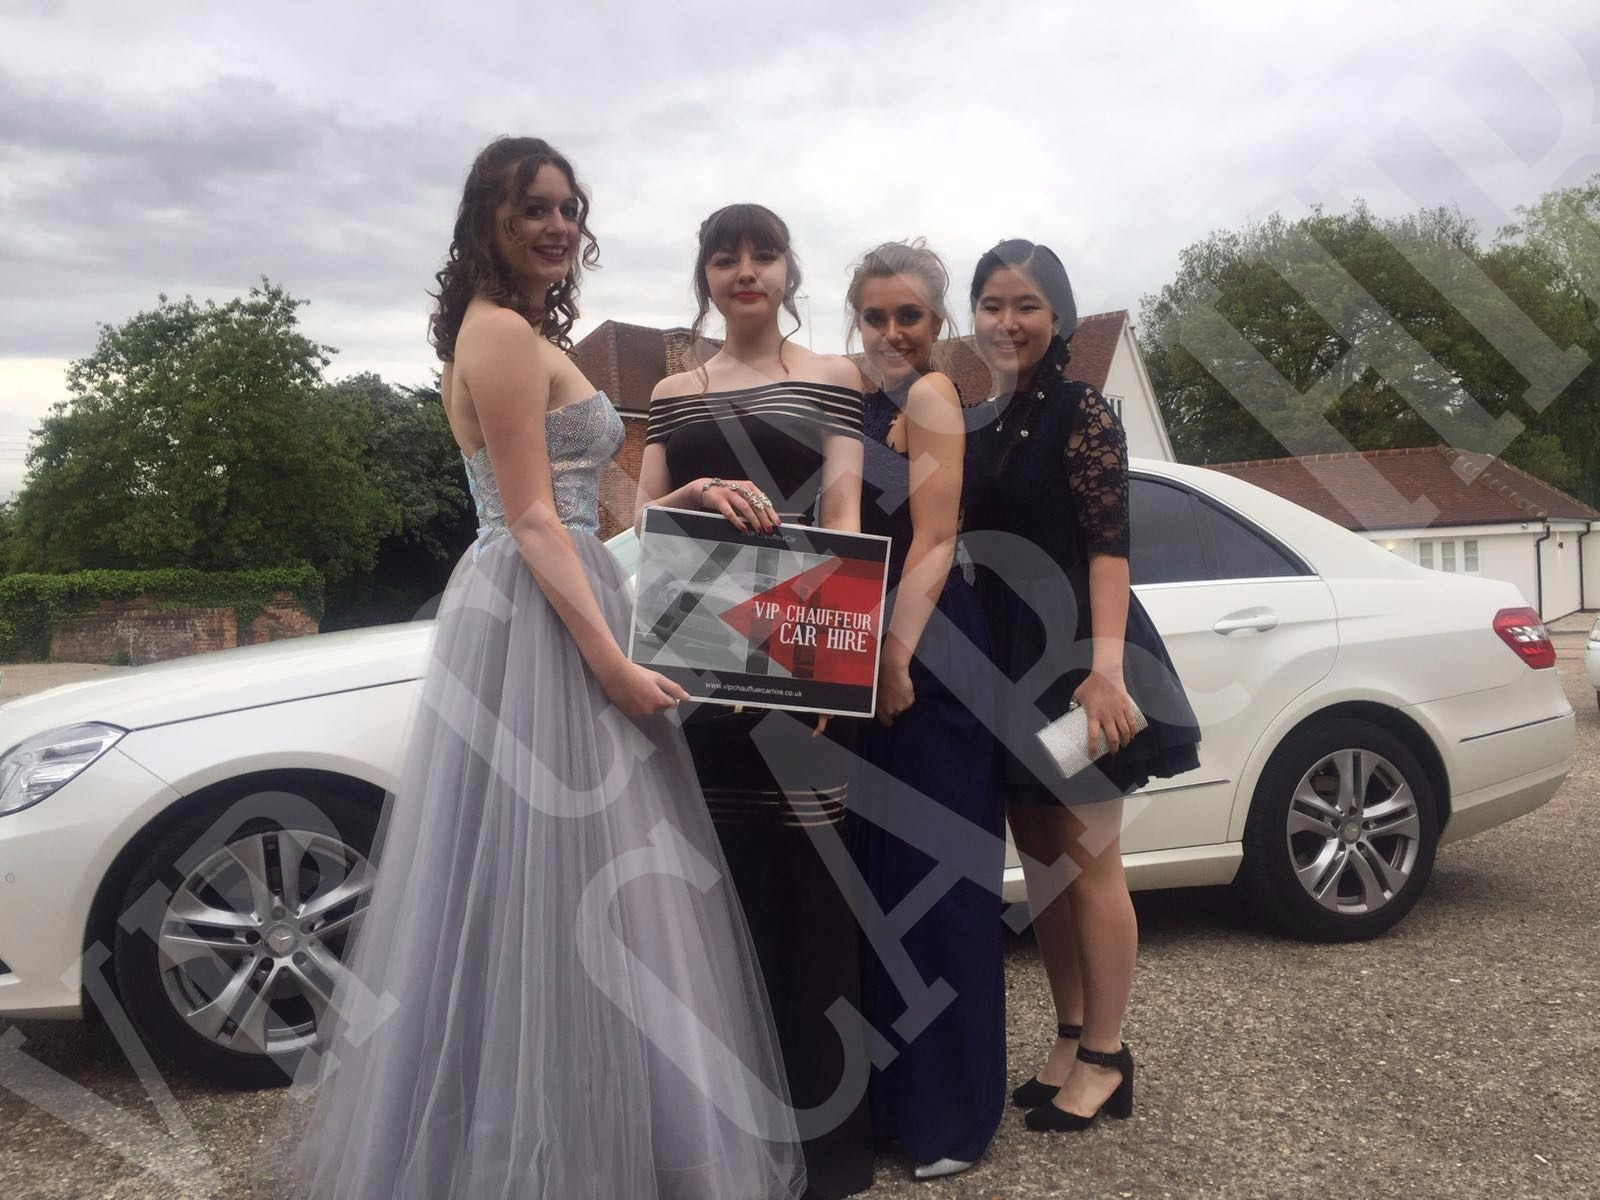 School Prom Car And Limousine Hire Vip Chauffeur Car Hire